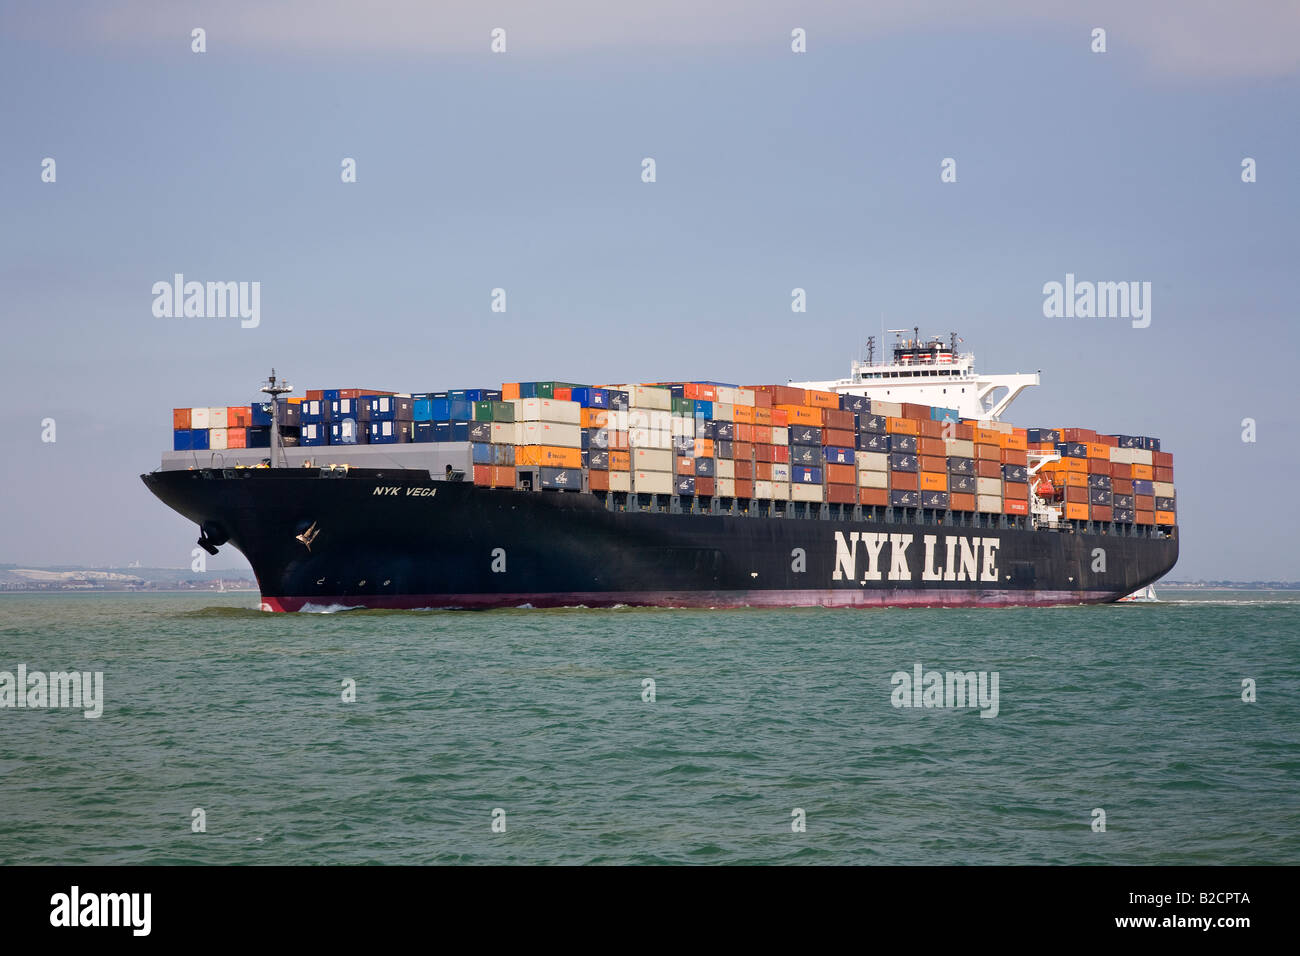 Nyk Vega fully loaded container ship in the Solent bound for Southampton UK - Stock Image